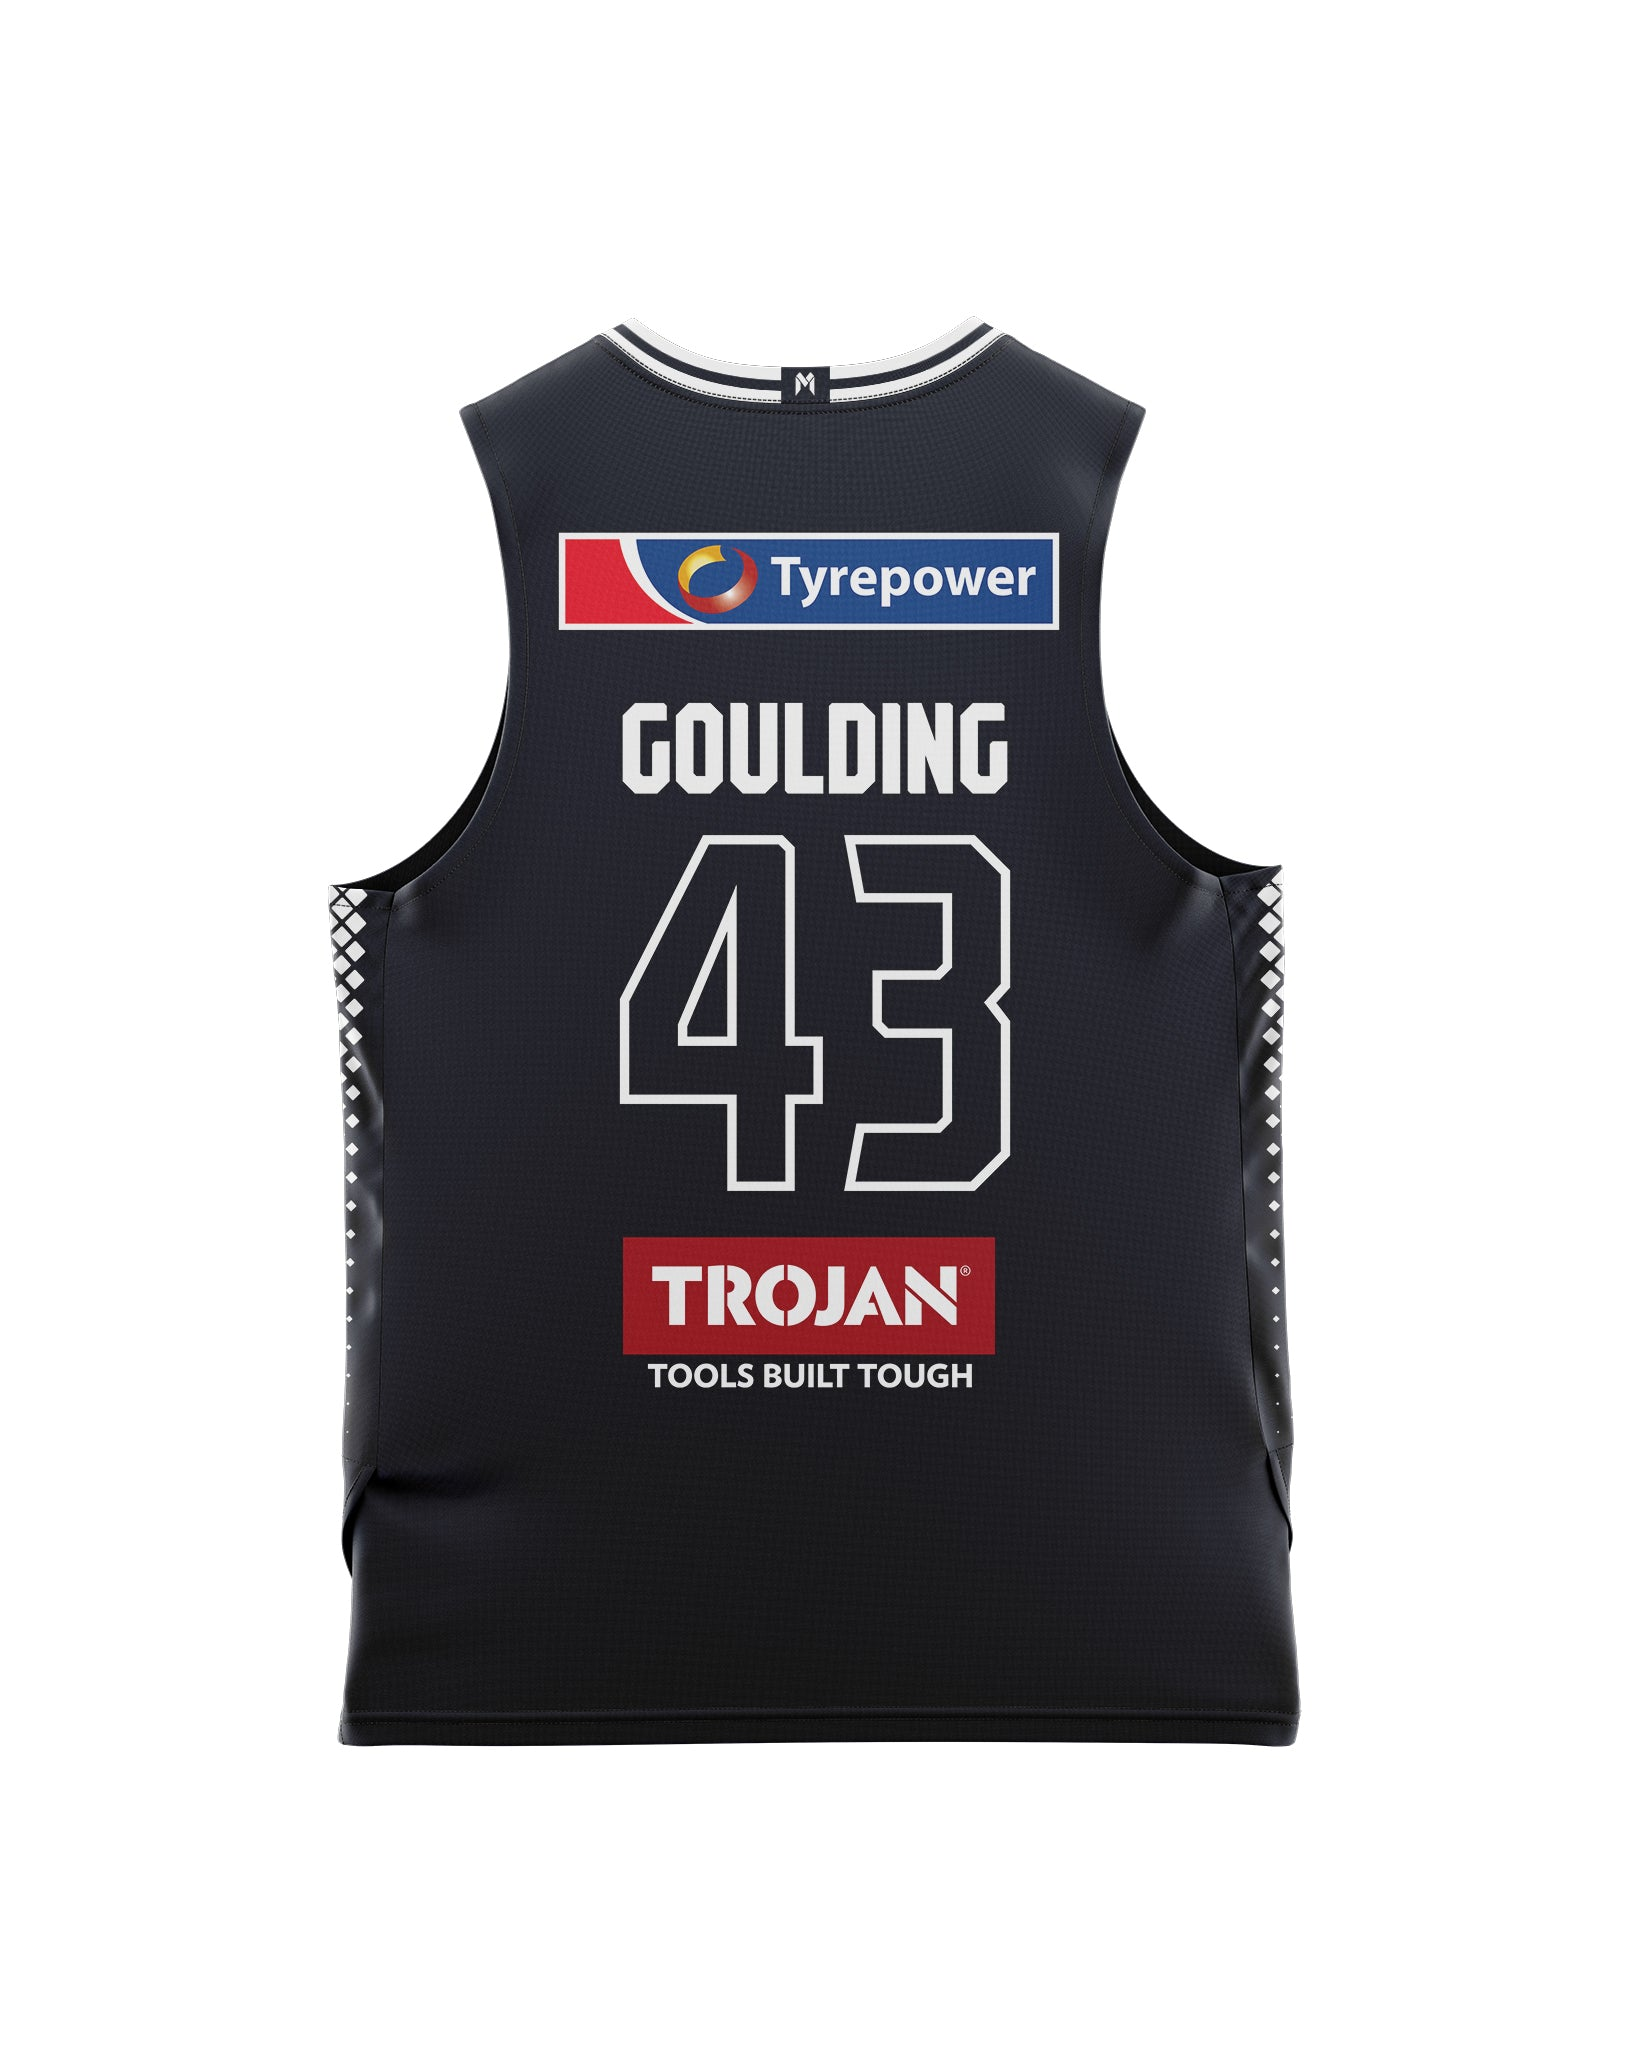 Melbourne United 20/21 Youth Authentic Home Jersey - Chris Goulding